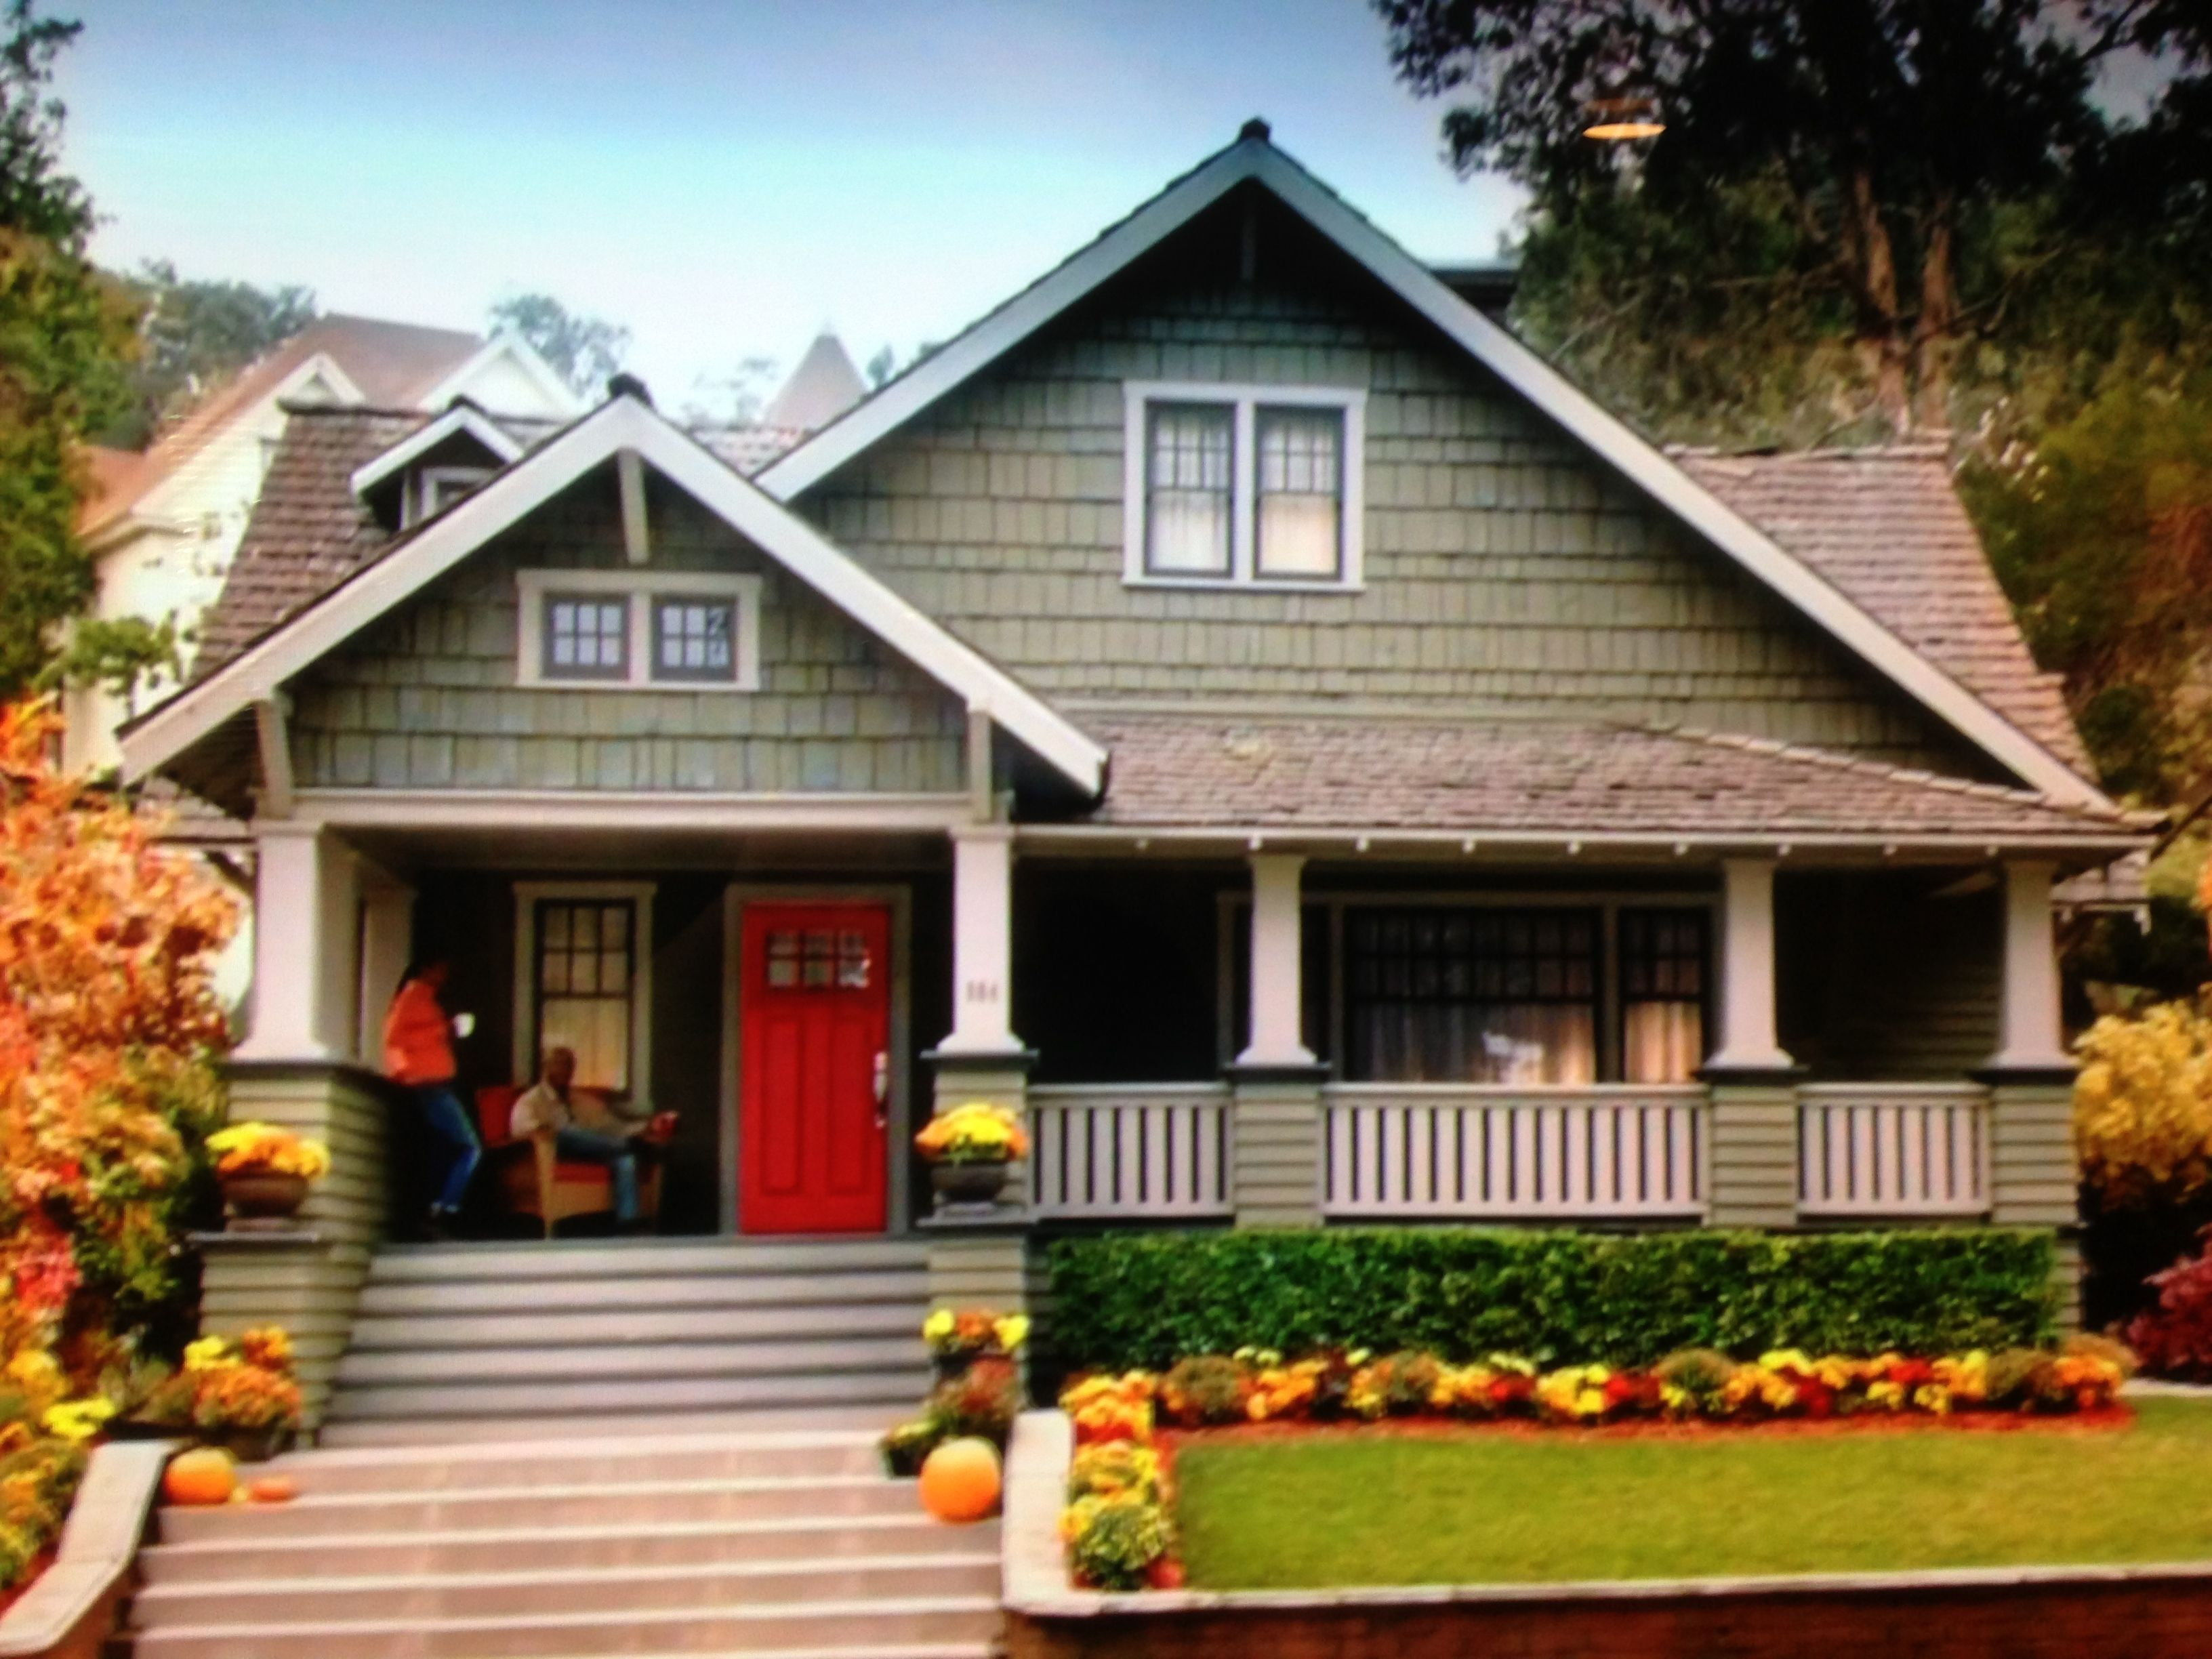 Craftsman style house from the home depot commercial on tv - What is a bungalow style home ...